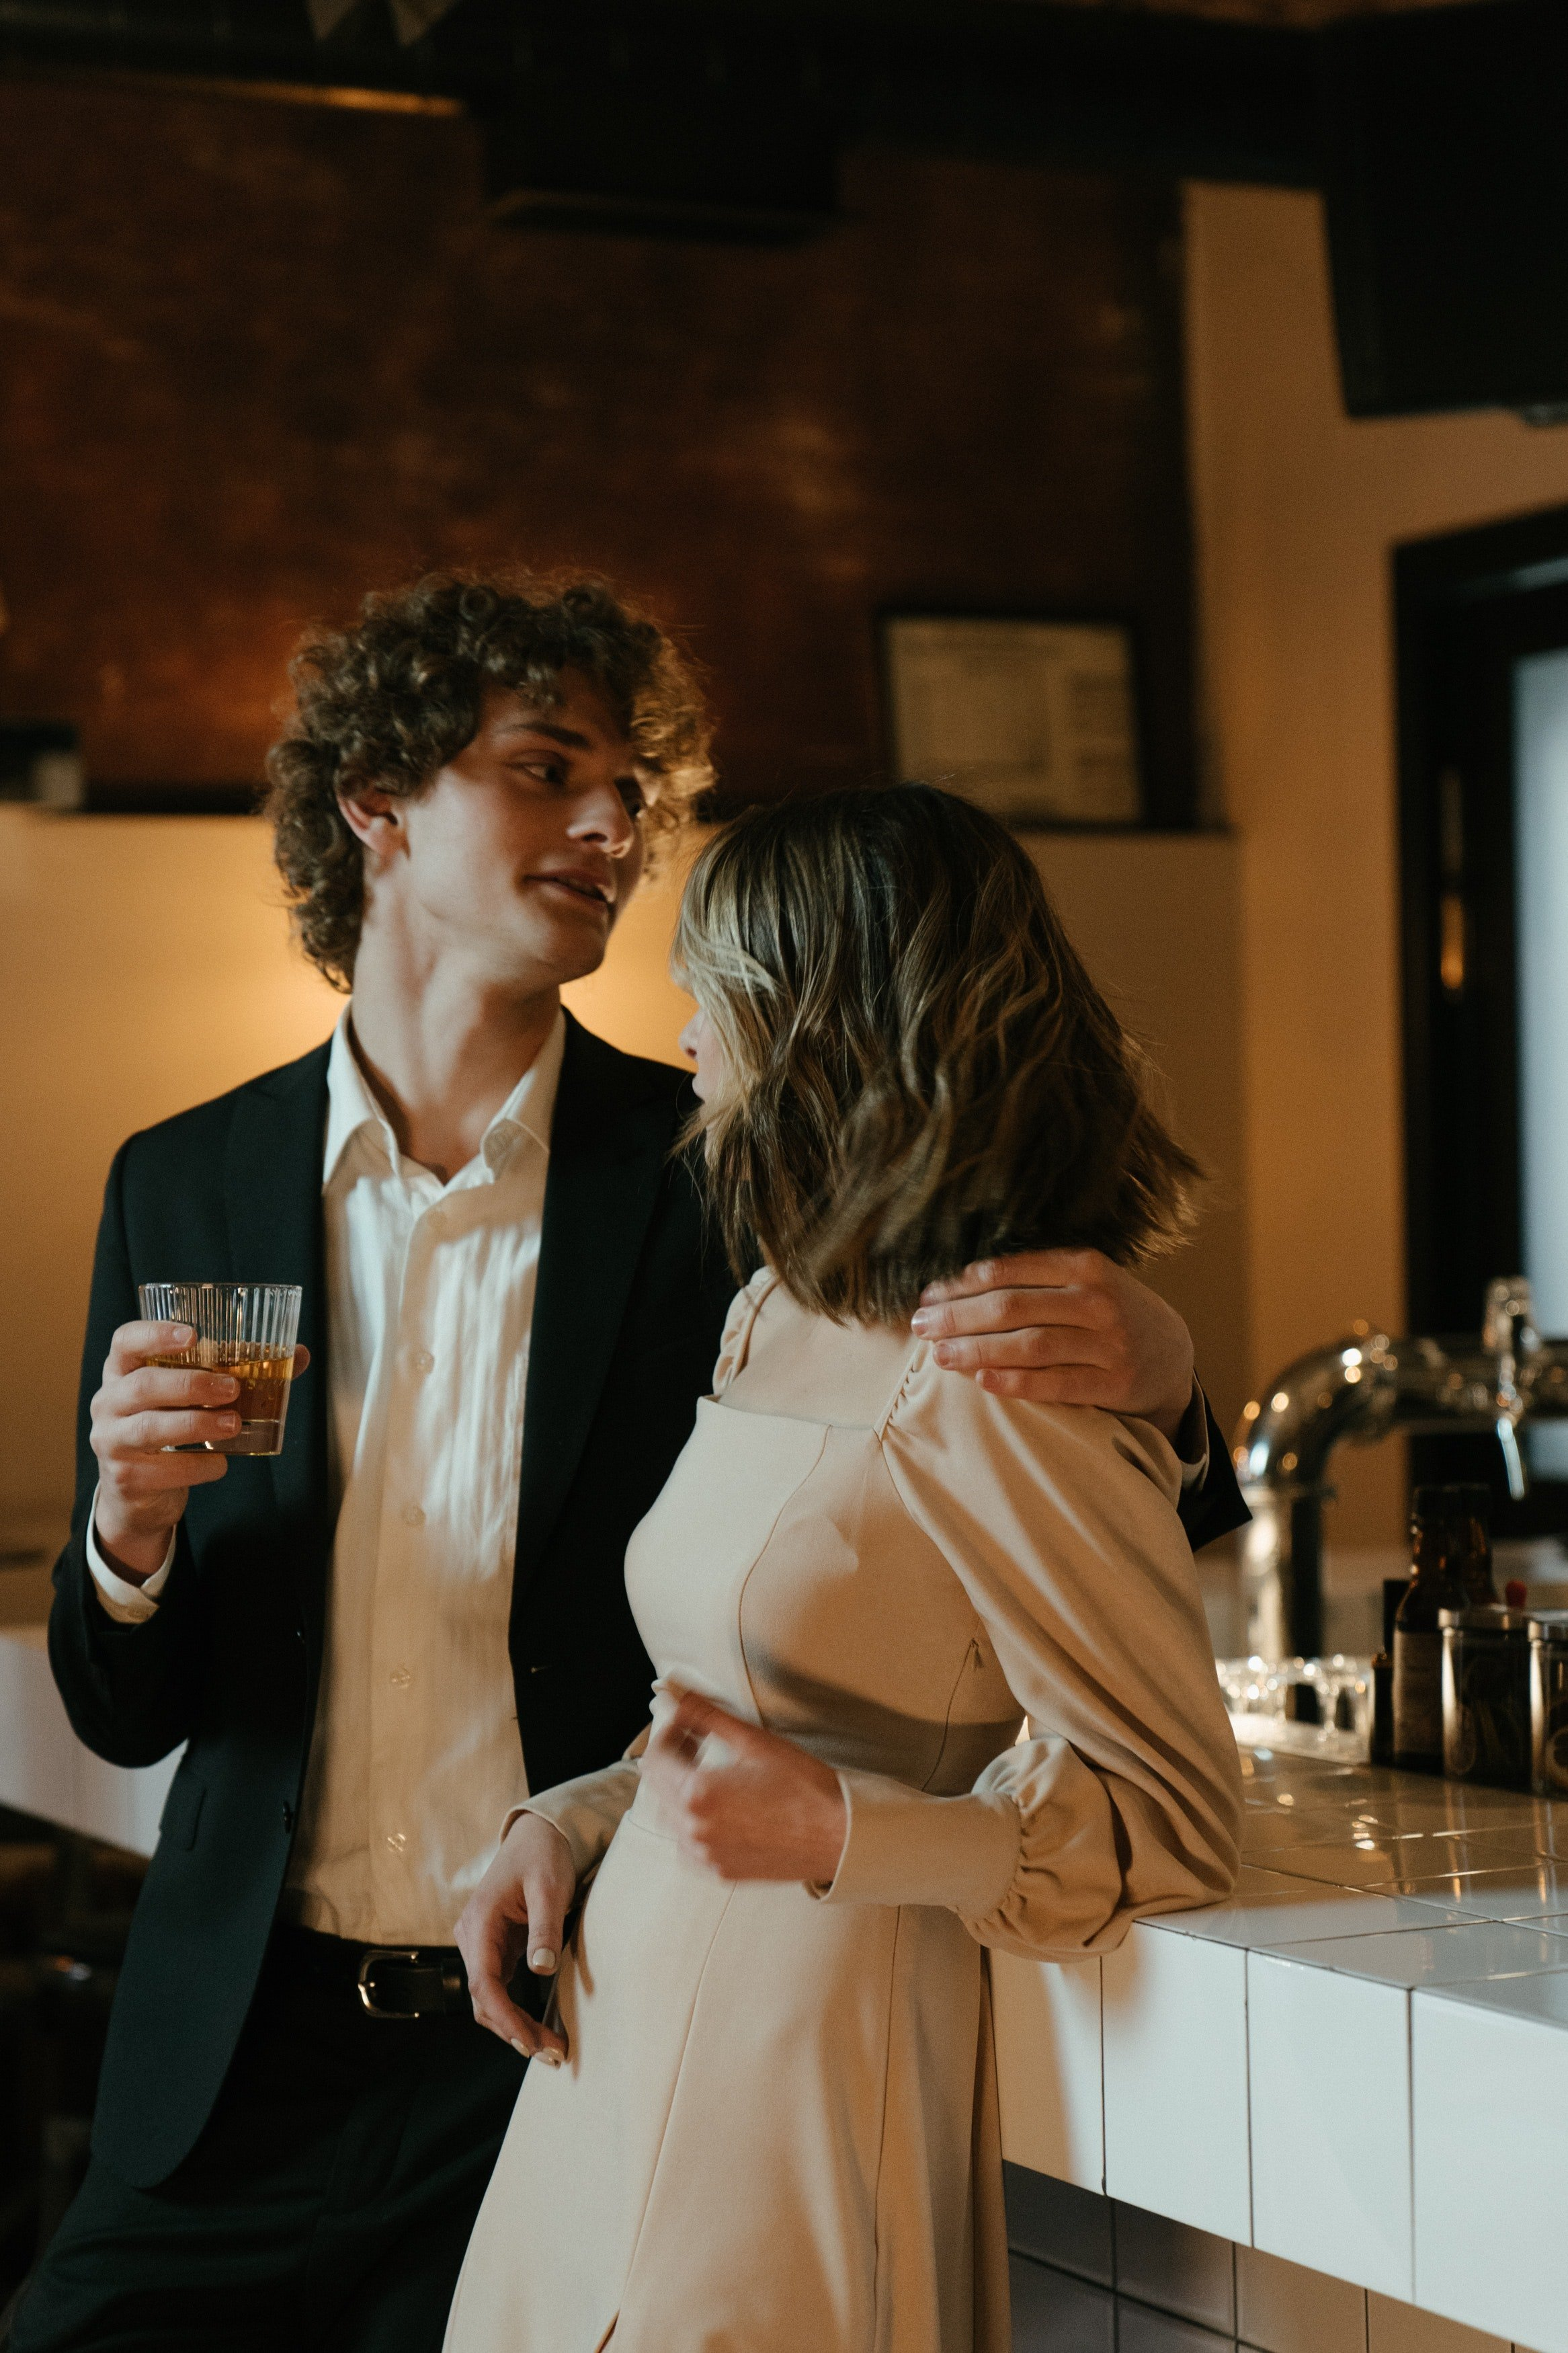 A woman and man talking in a bar.   Photo: Pexels/cottonbro